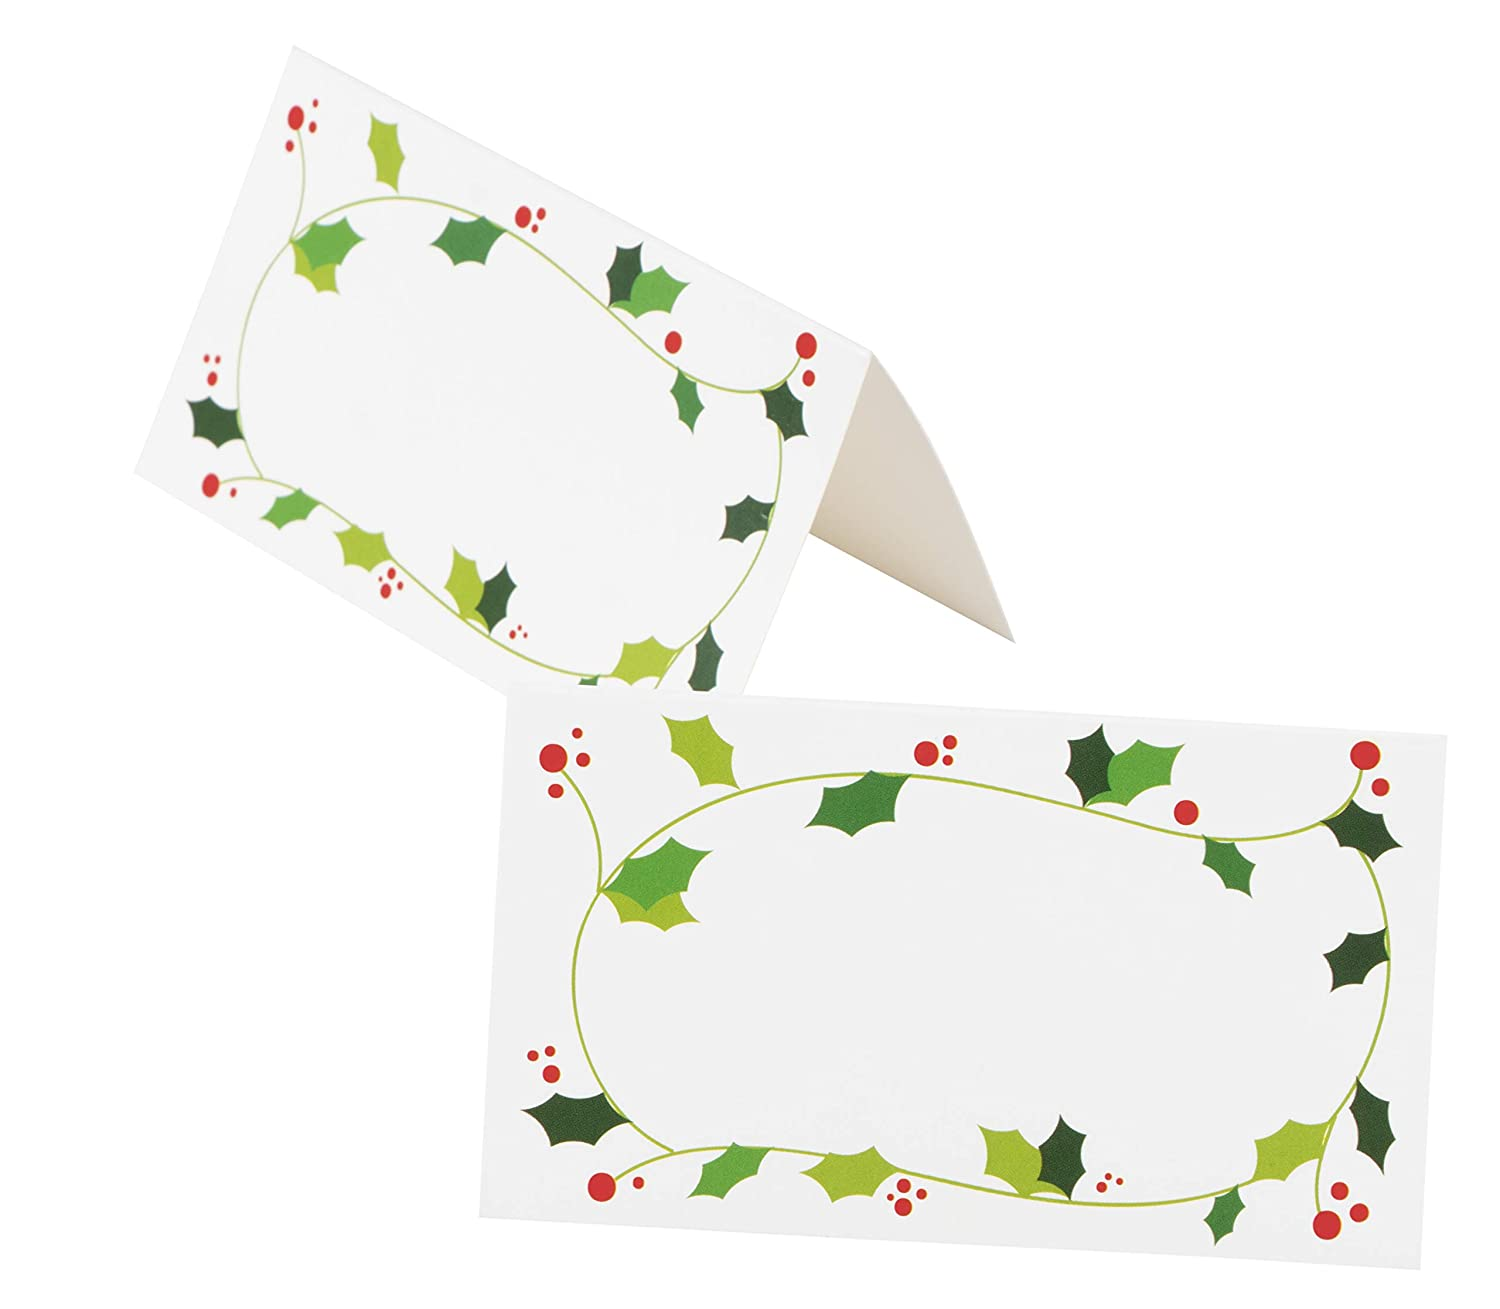 Place Cards - 100-Pack Christmas Small Tent Cards, Foldover Table Placecards, Table Setting Seat Assignment Deocration for Holiday Lunch and Dinner Parties, Christmas Wreath Design, Folded 2 x 3.5 Inc Juvale